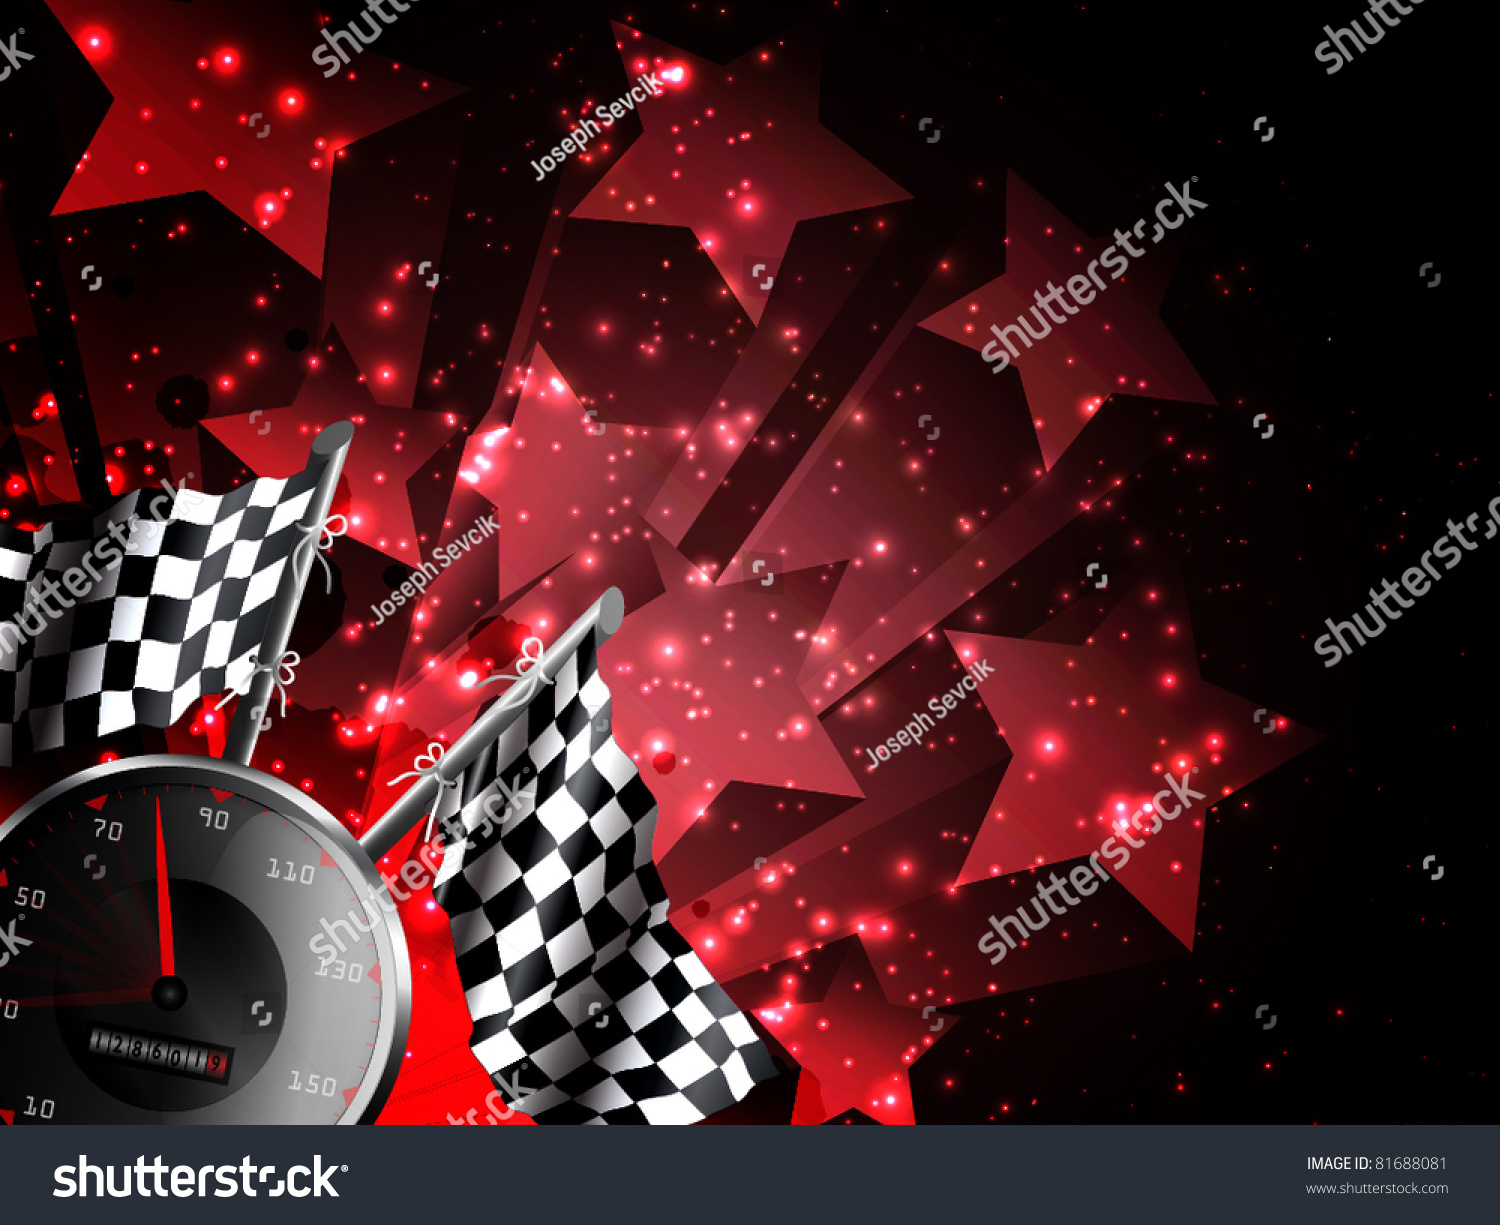 Hot racing background with stars 81688081